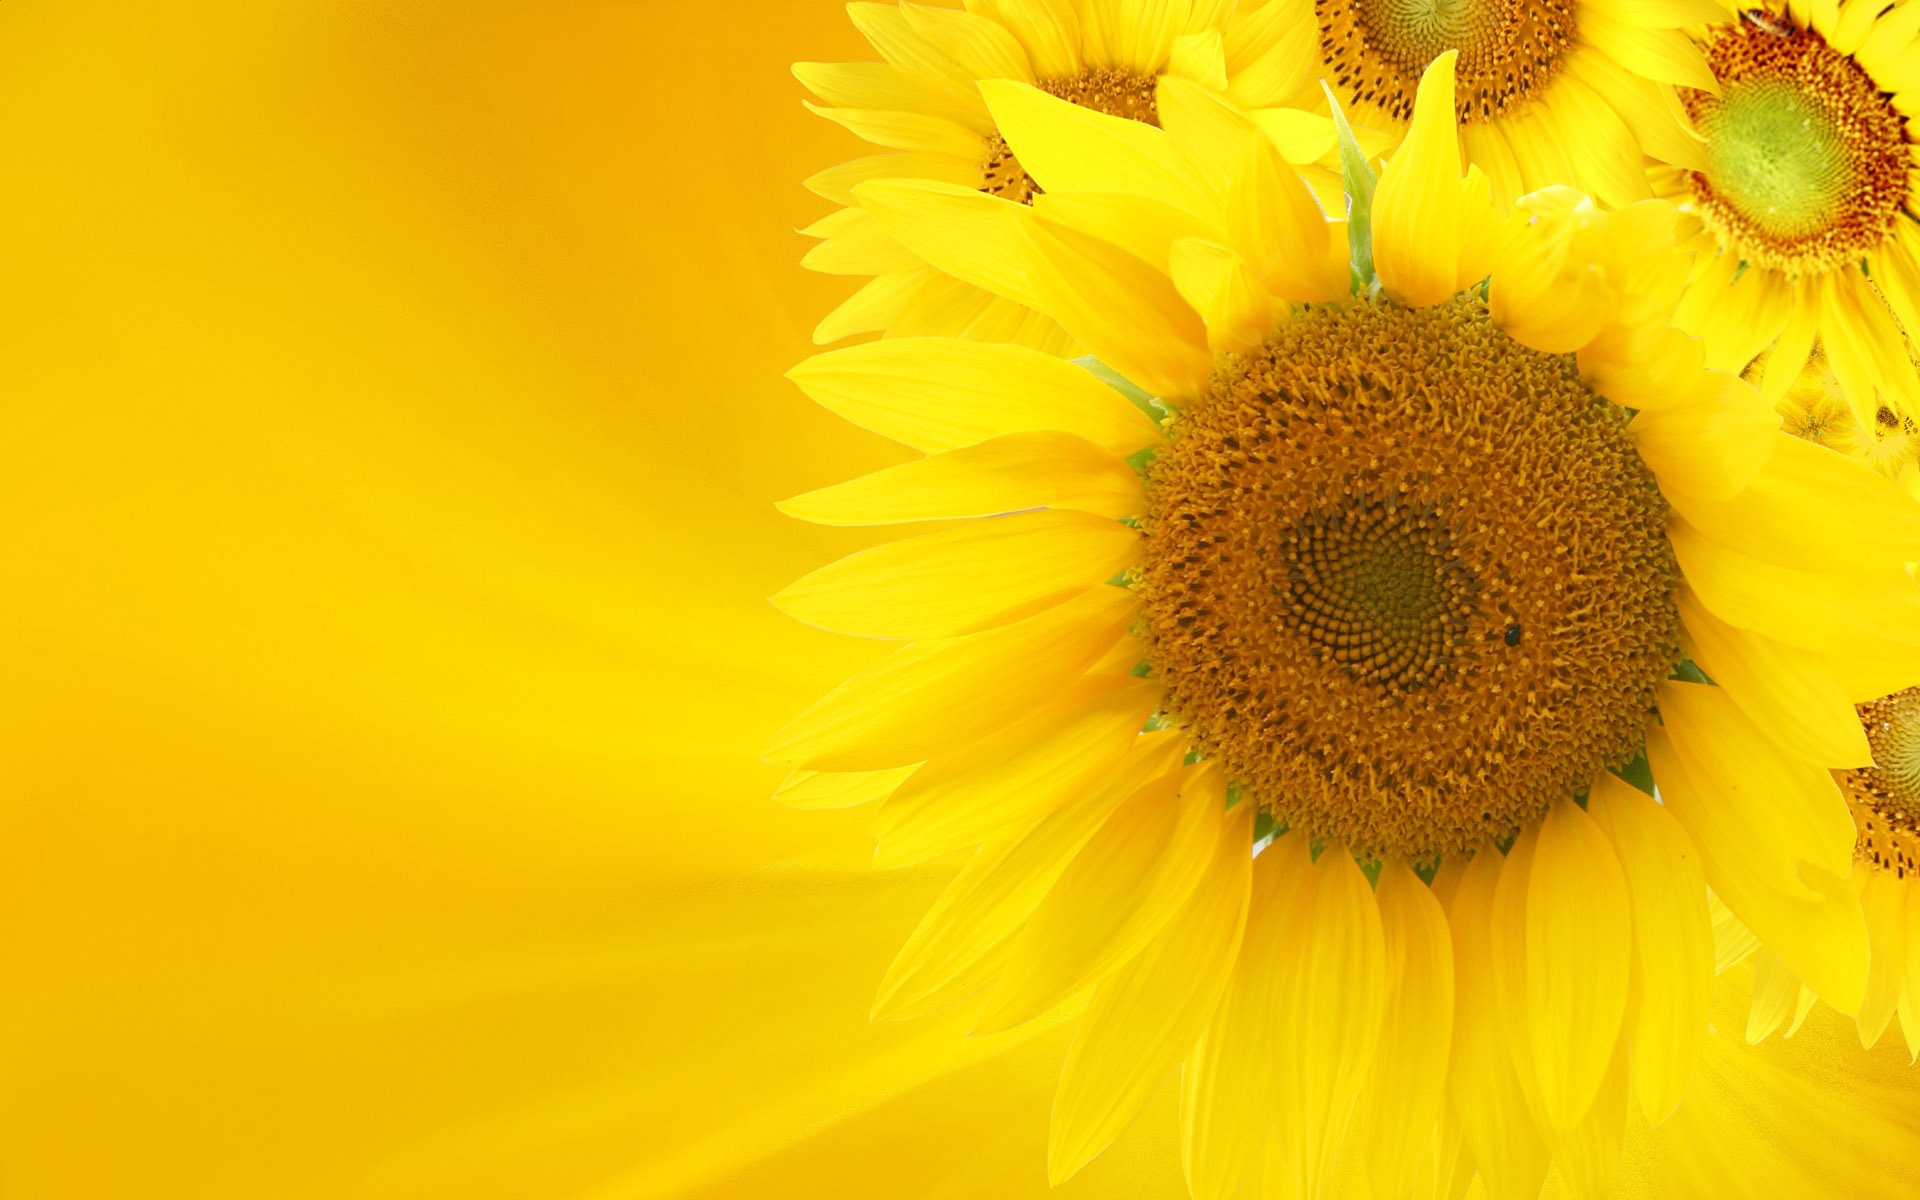 sunflower plant images